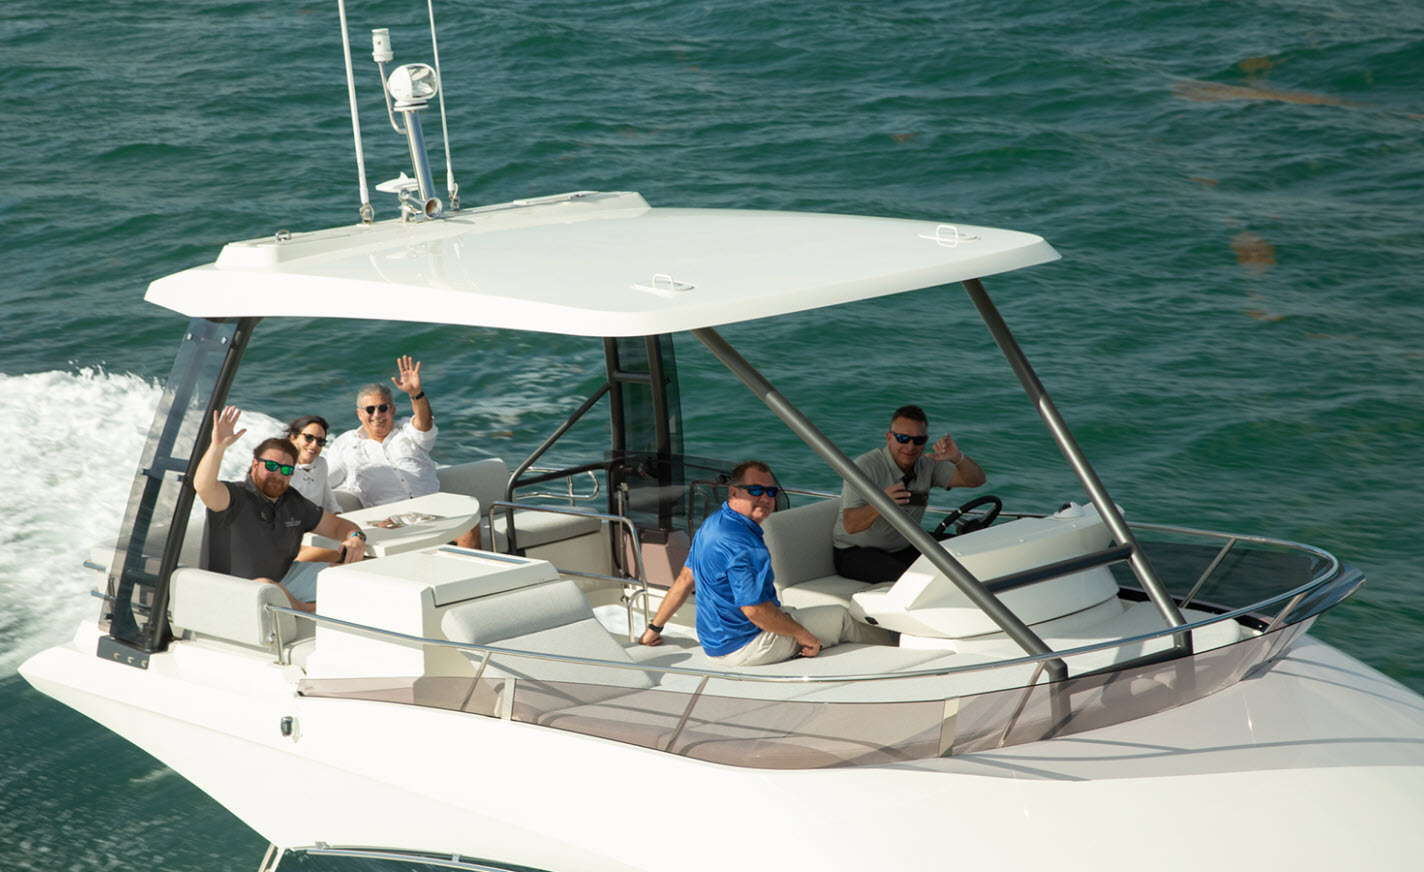 Enjoying a boat ride on a Prestige flybridge